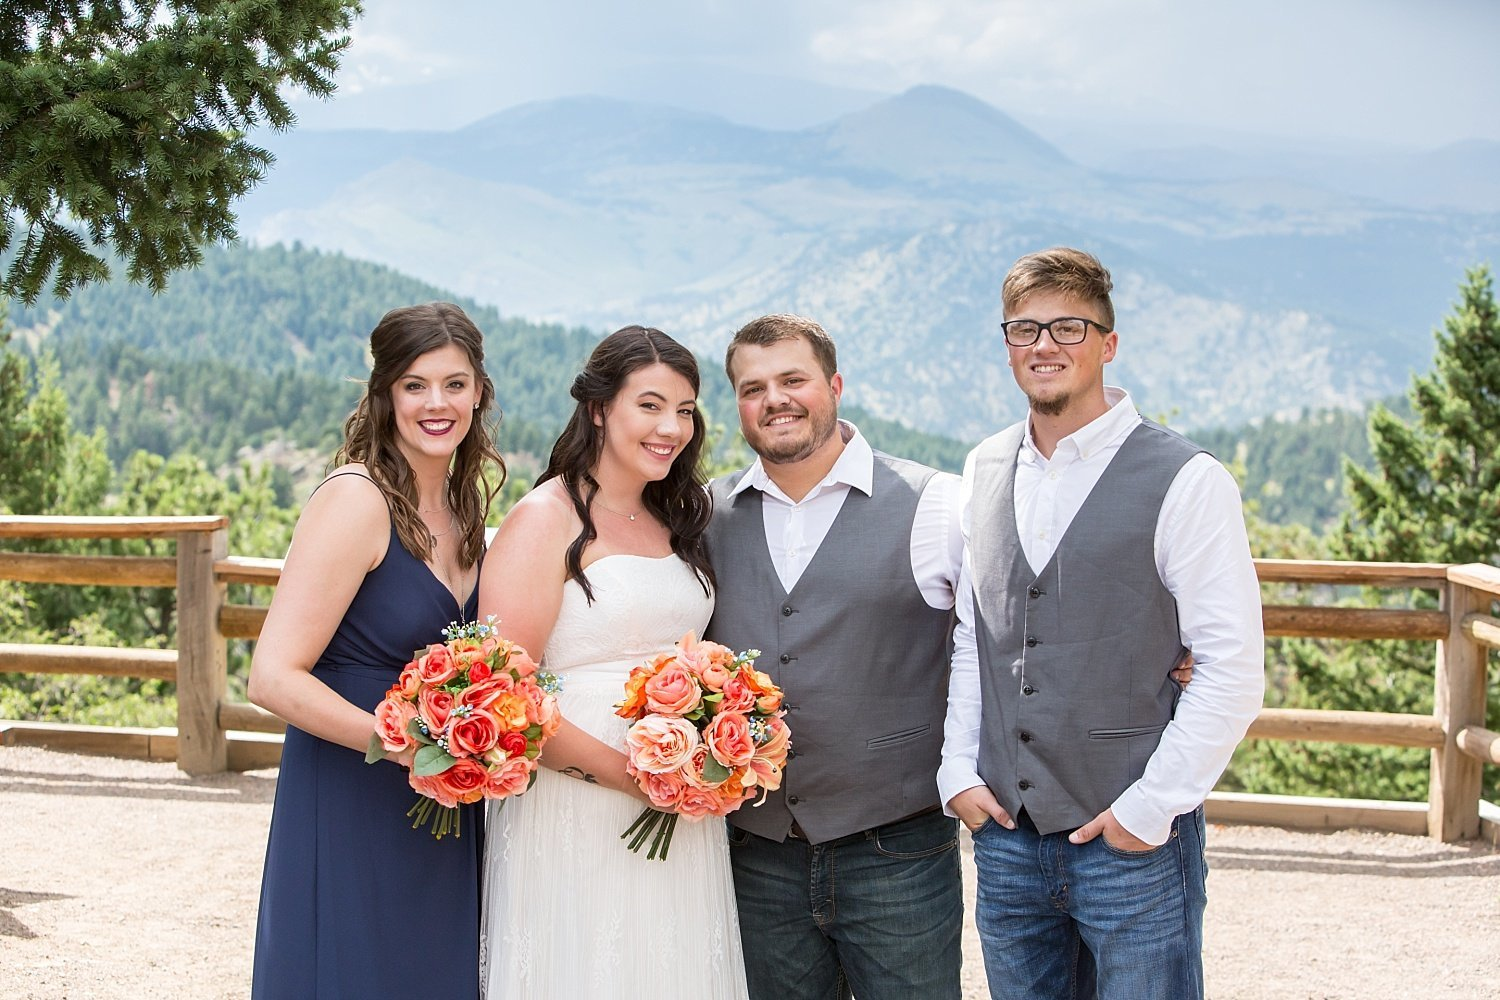 Colorado wedding photography - wedding party portraits